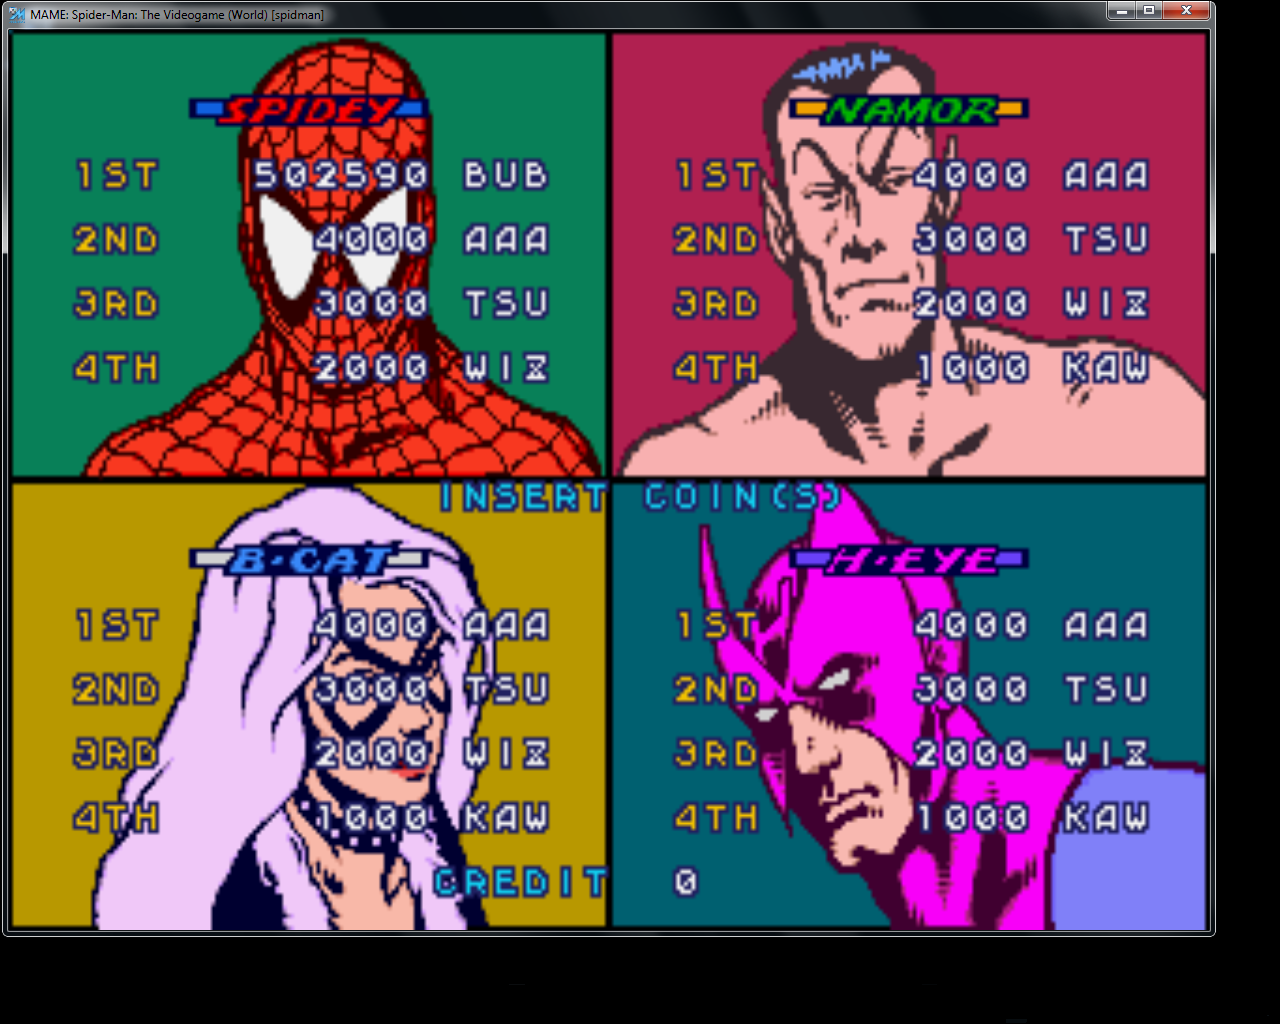 bubufubu: Spider-Man: The Video Game [spidman] (Arcade Emulated / M.A.M.E.) 502,590 points on 2015-03-23 18:20:29